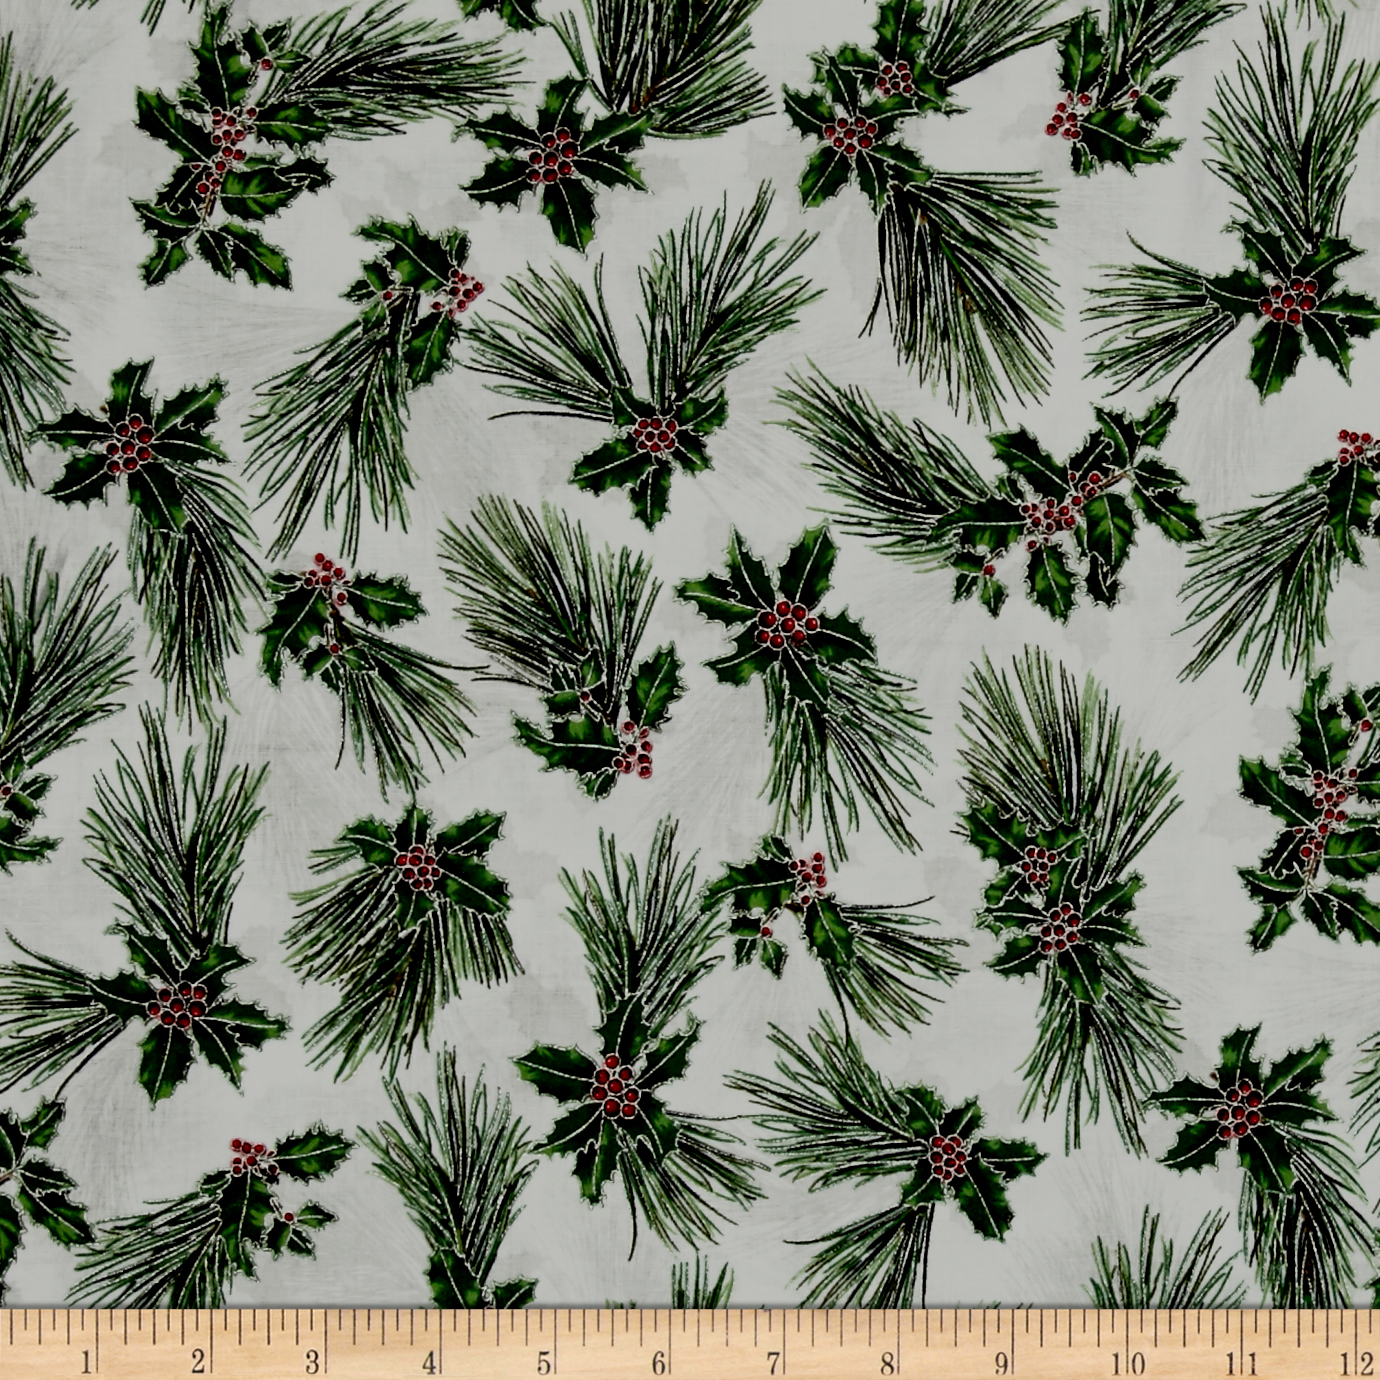 Suite Christmas Metallic Pretty Pine Icicle Fabric By The Yard